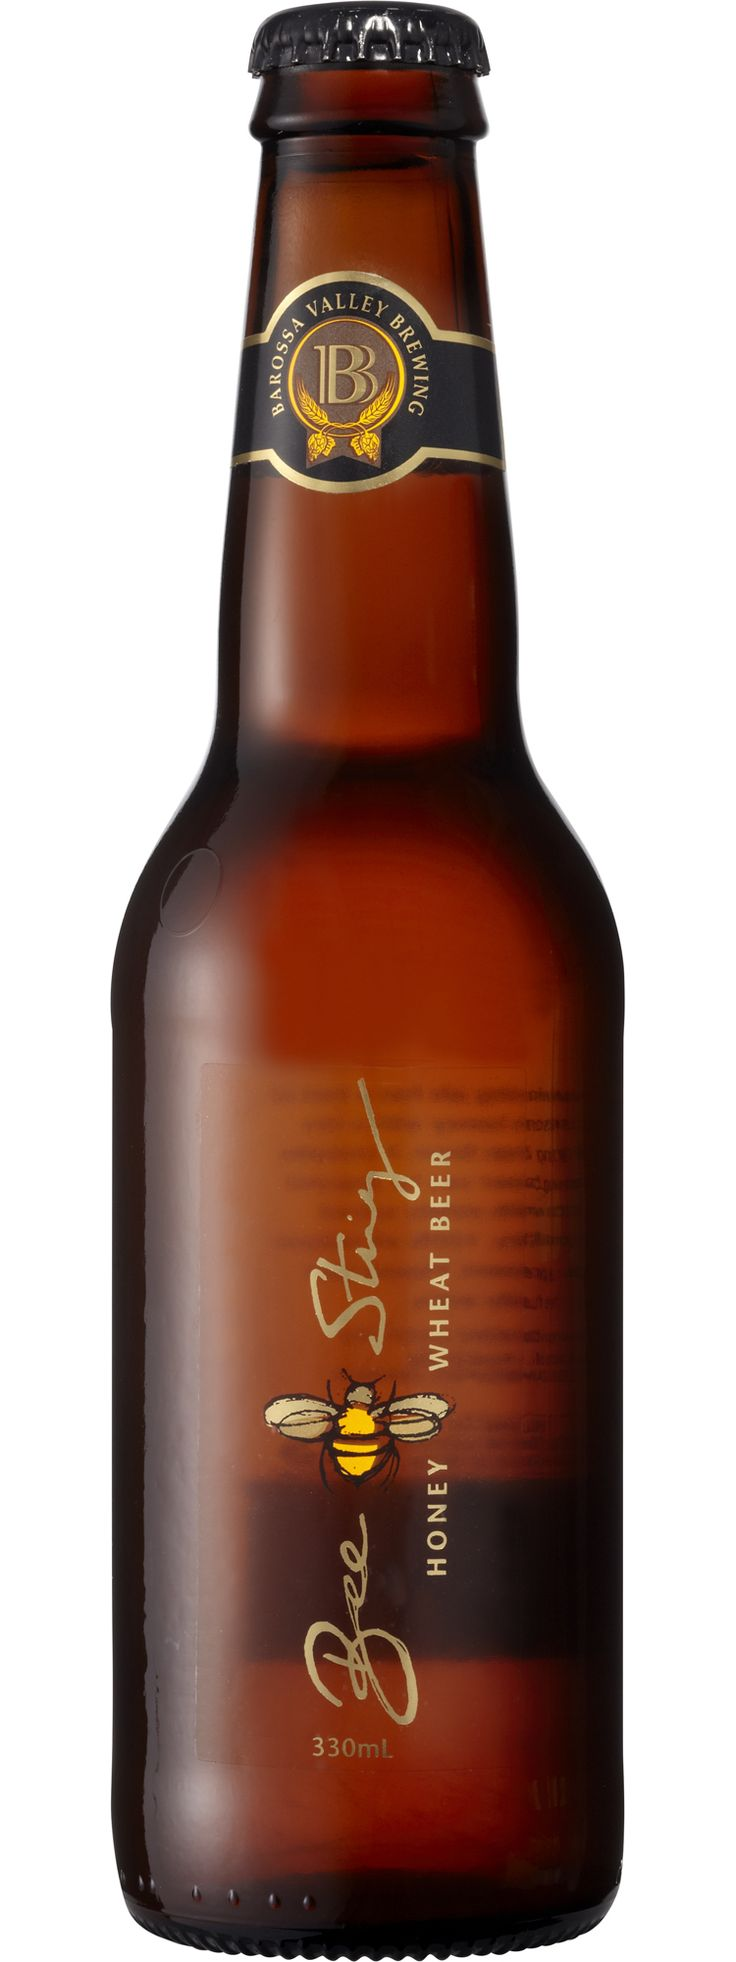 Bee Sting: Honey Wheat Beer - must find!